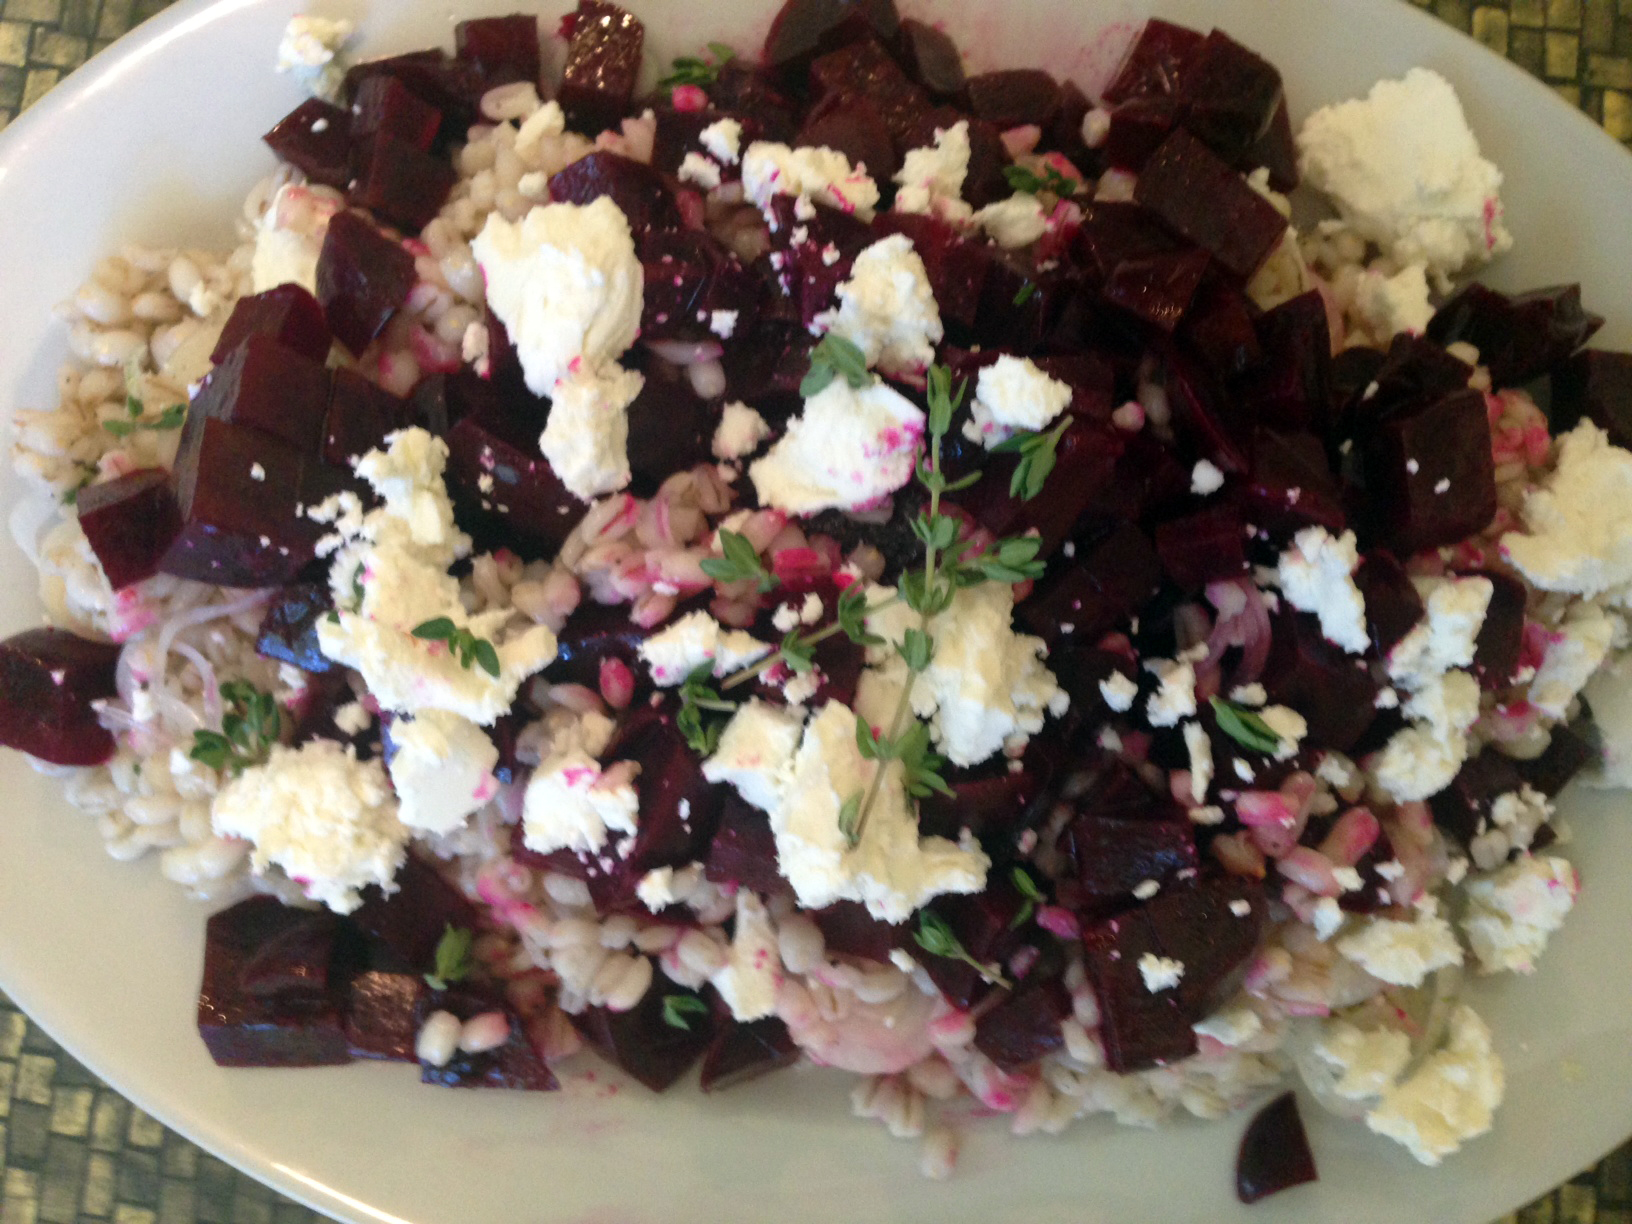 Roasted beet and barley salad with picked spring onions and goat cheese.